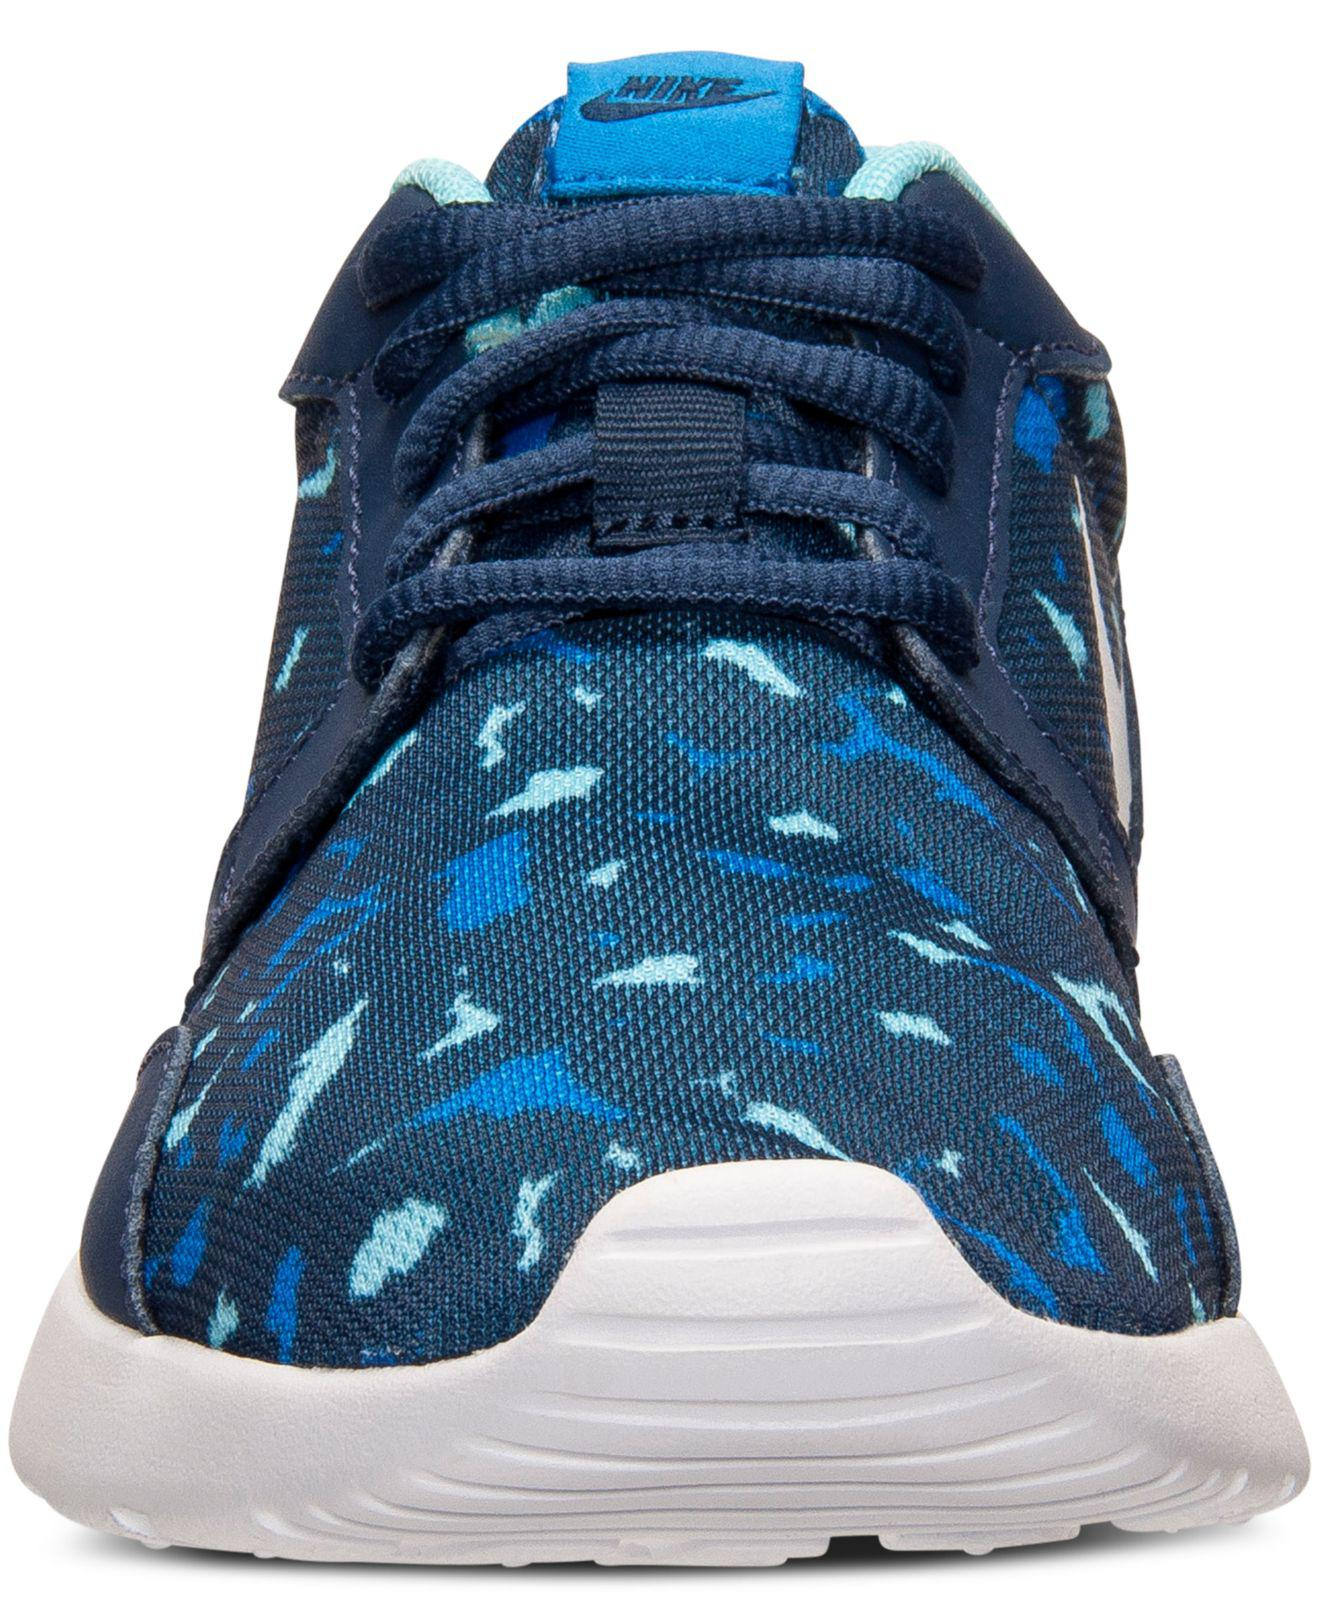 the best attitude 41f6c 434a2 ... where can i buy lyst nike womens kaishi print casual sneakers from  finish line in 8f61a